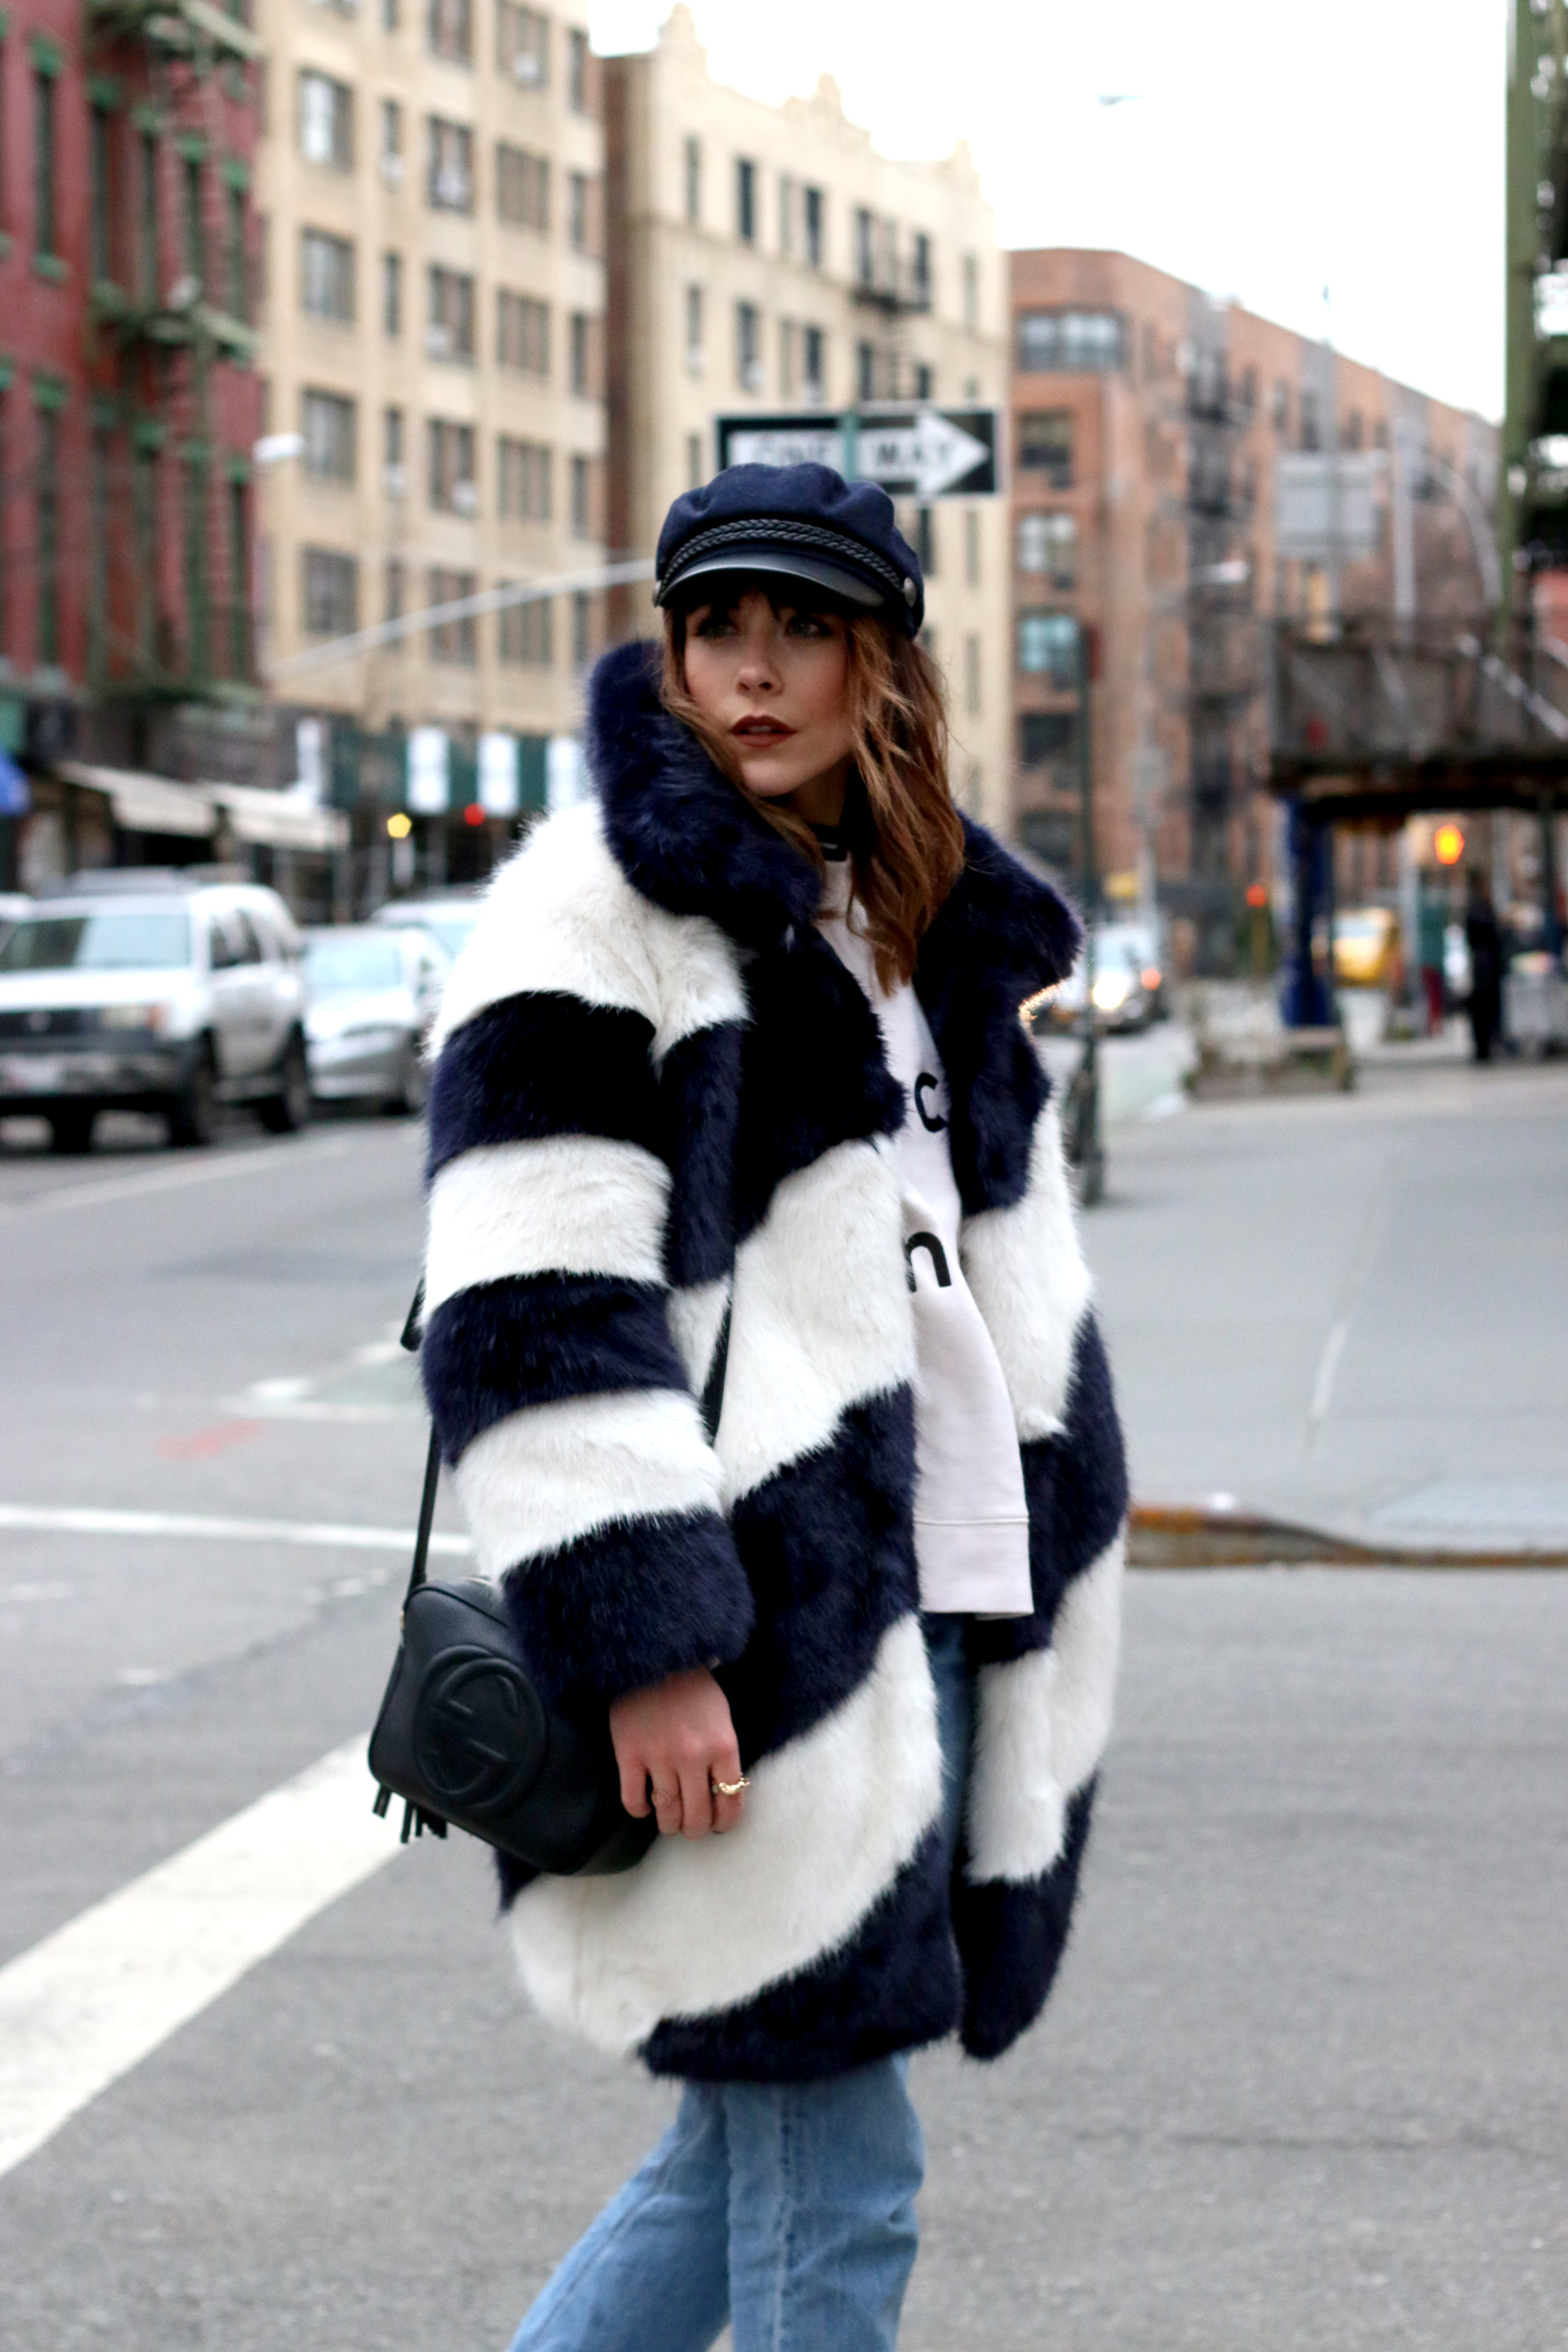 HOW TO STAY WARM AND BE STYLISH